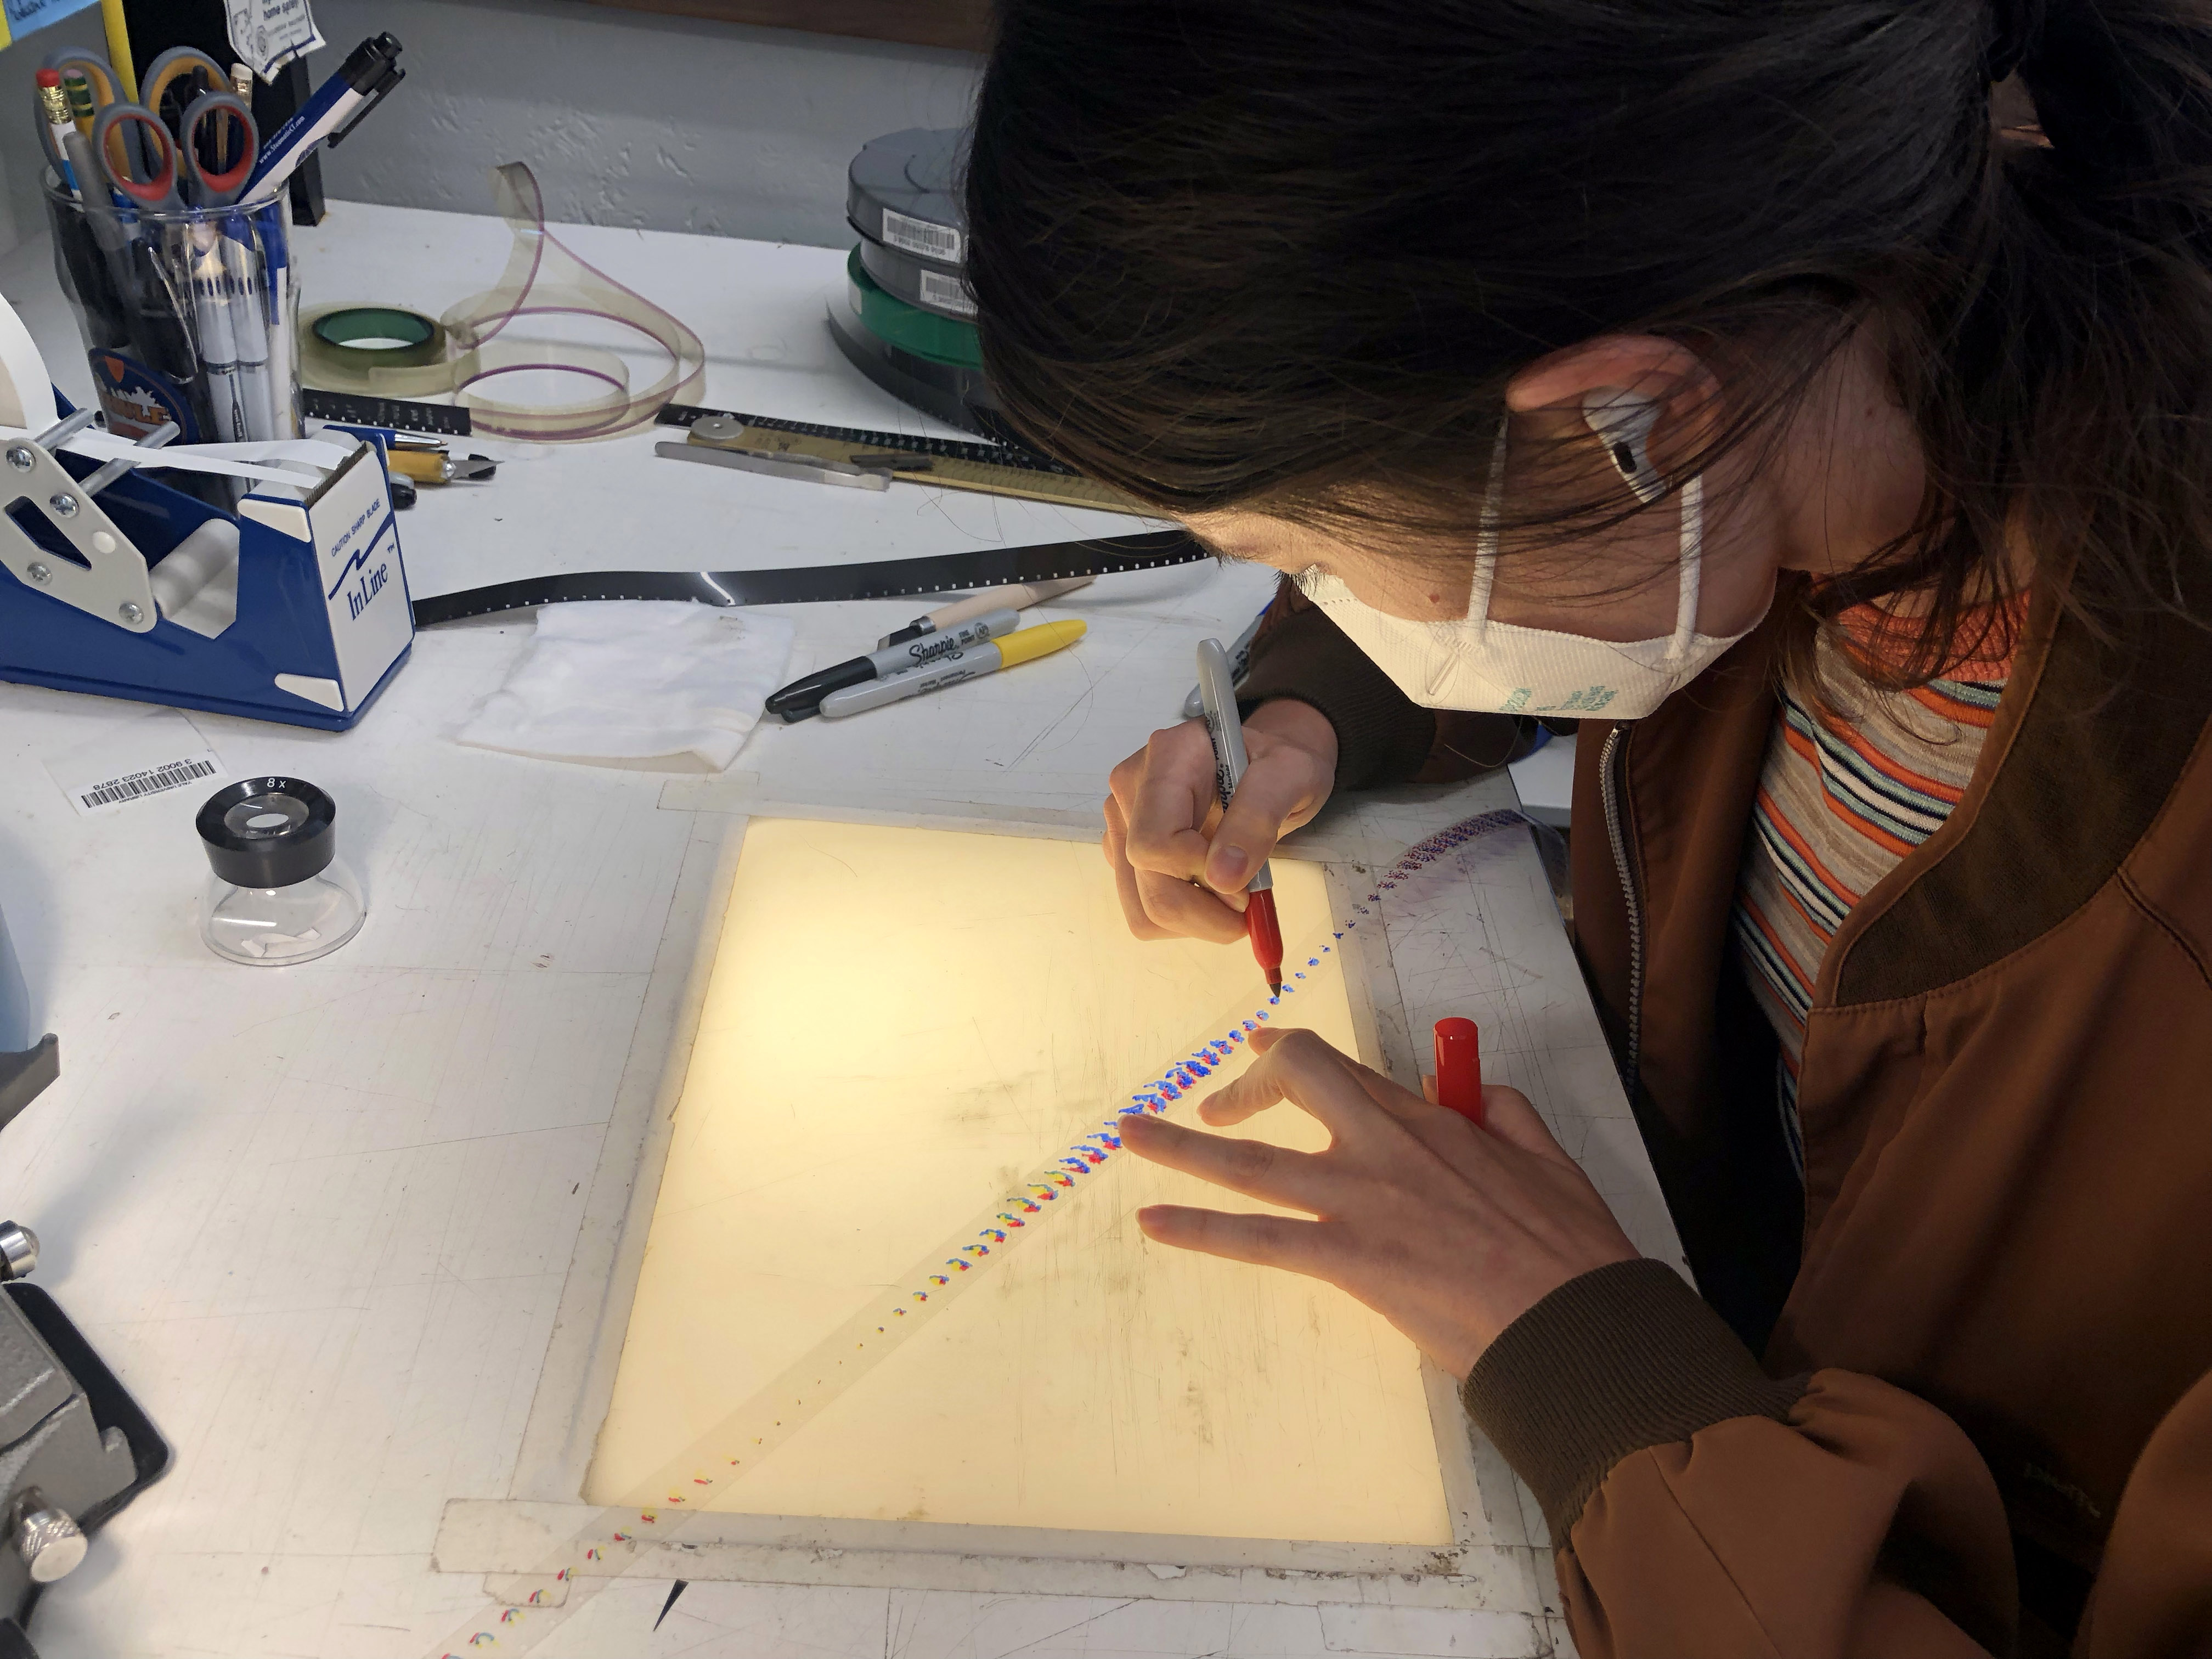 Female student draws in color on a film strip